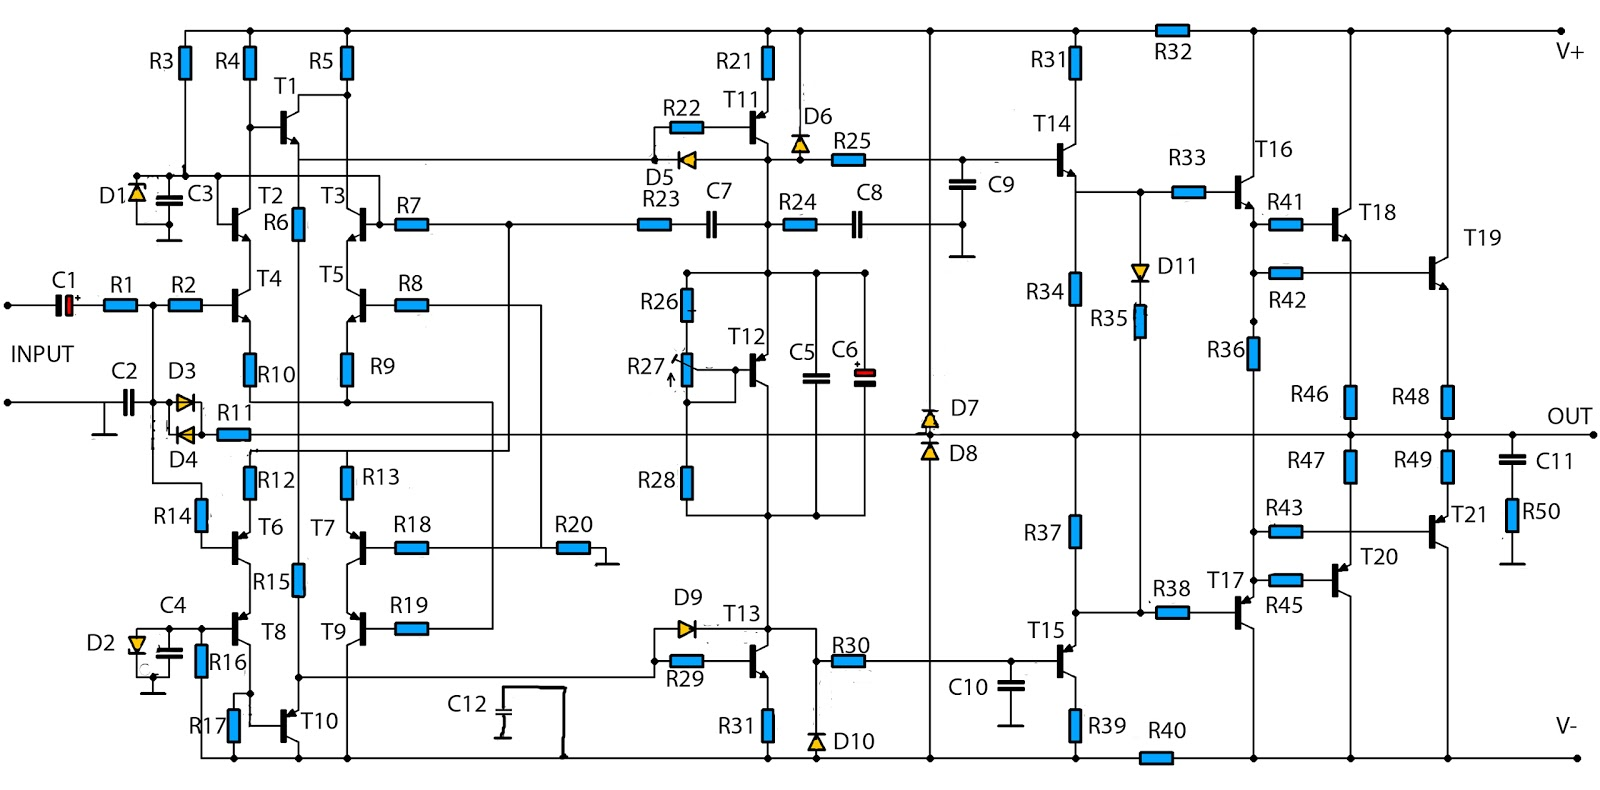 Wiring Diagram Amp Data Sheet Library Fi Ipod Amplifier Circuit Using Ic 741 Electronic Projects Ahuja 250w 2800w High Power Audio